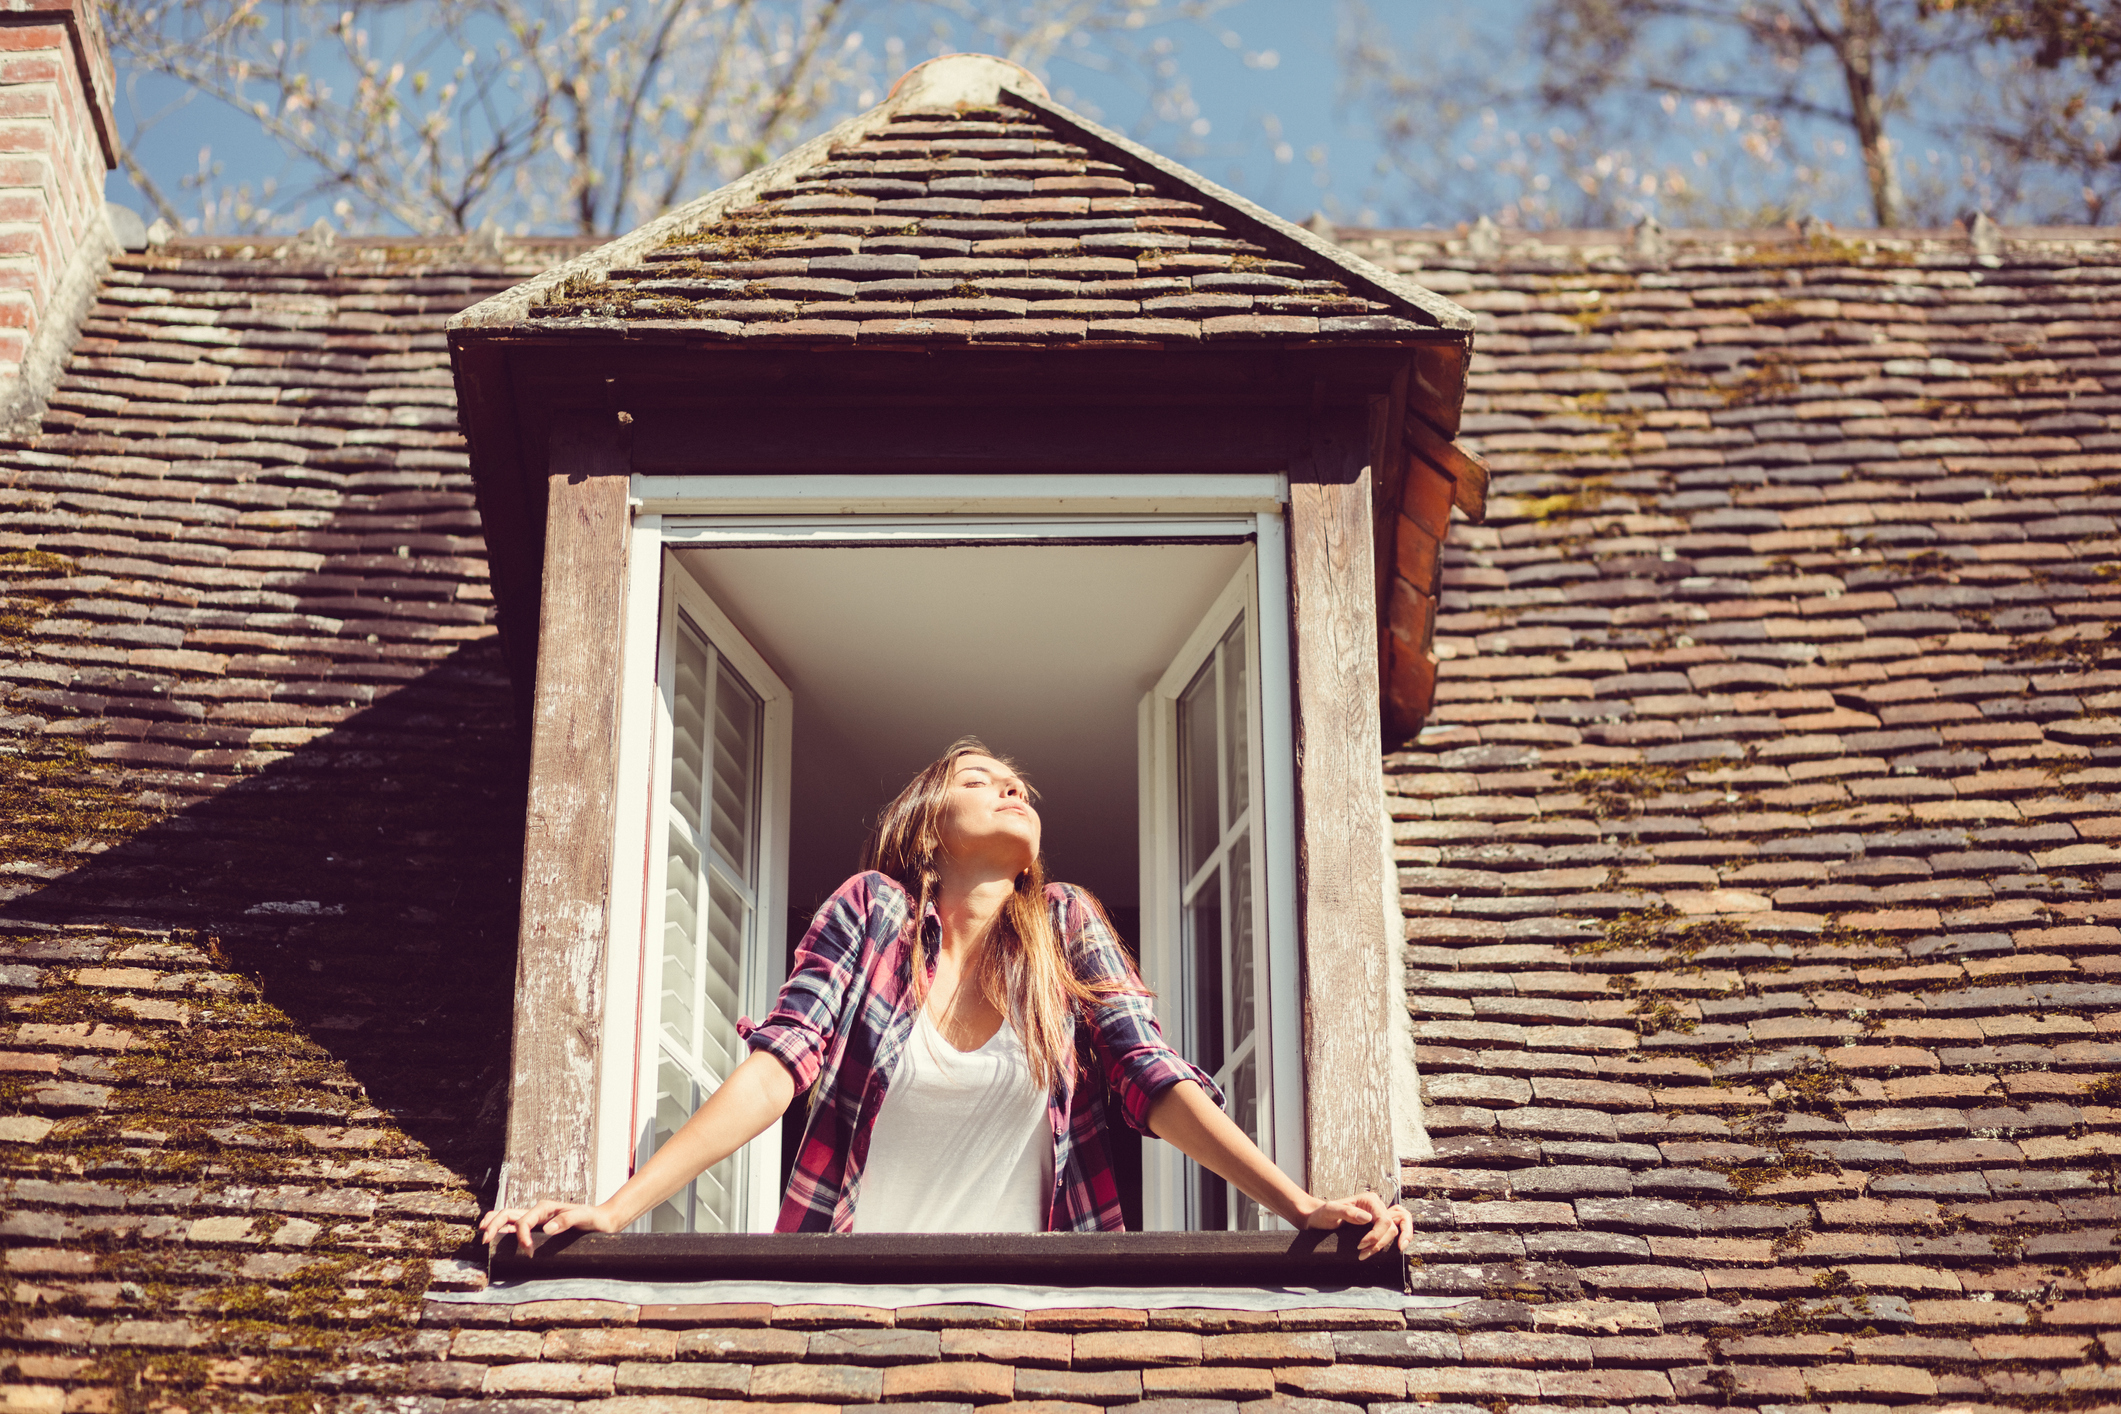 Woman-Smiling-Out-of-a-Window